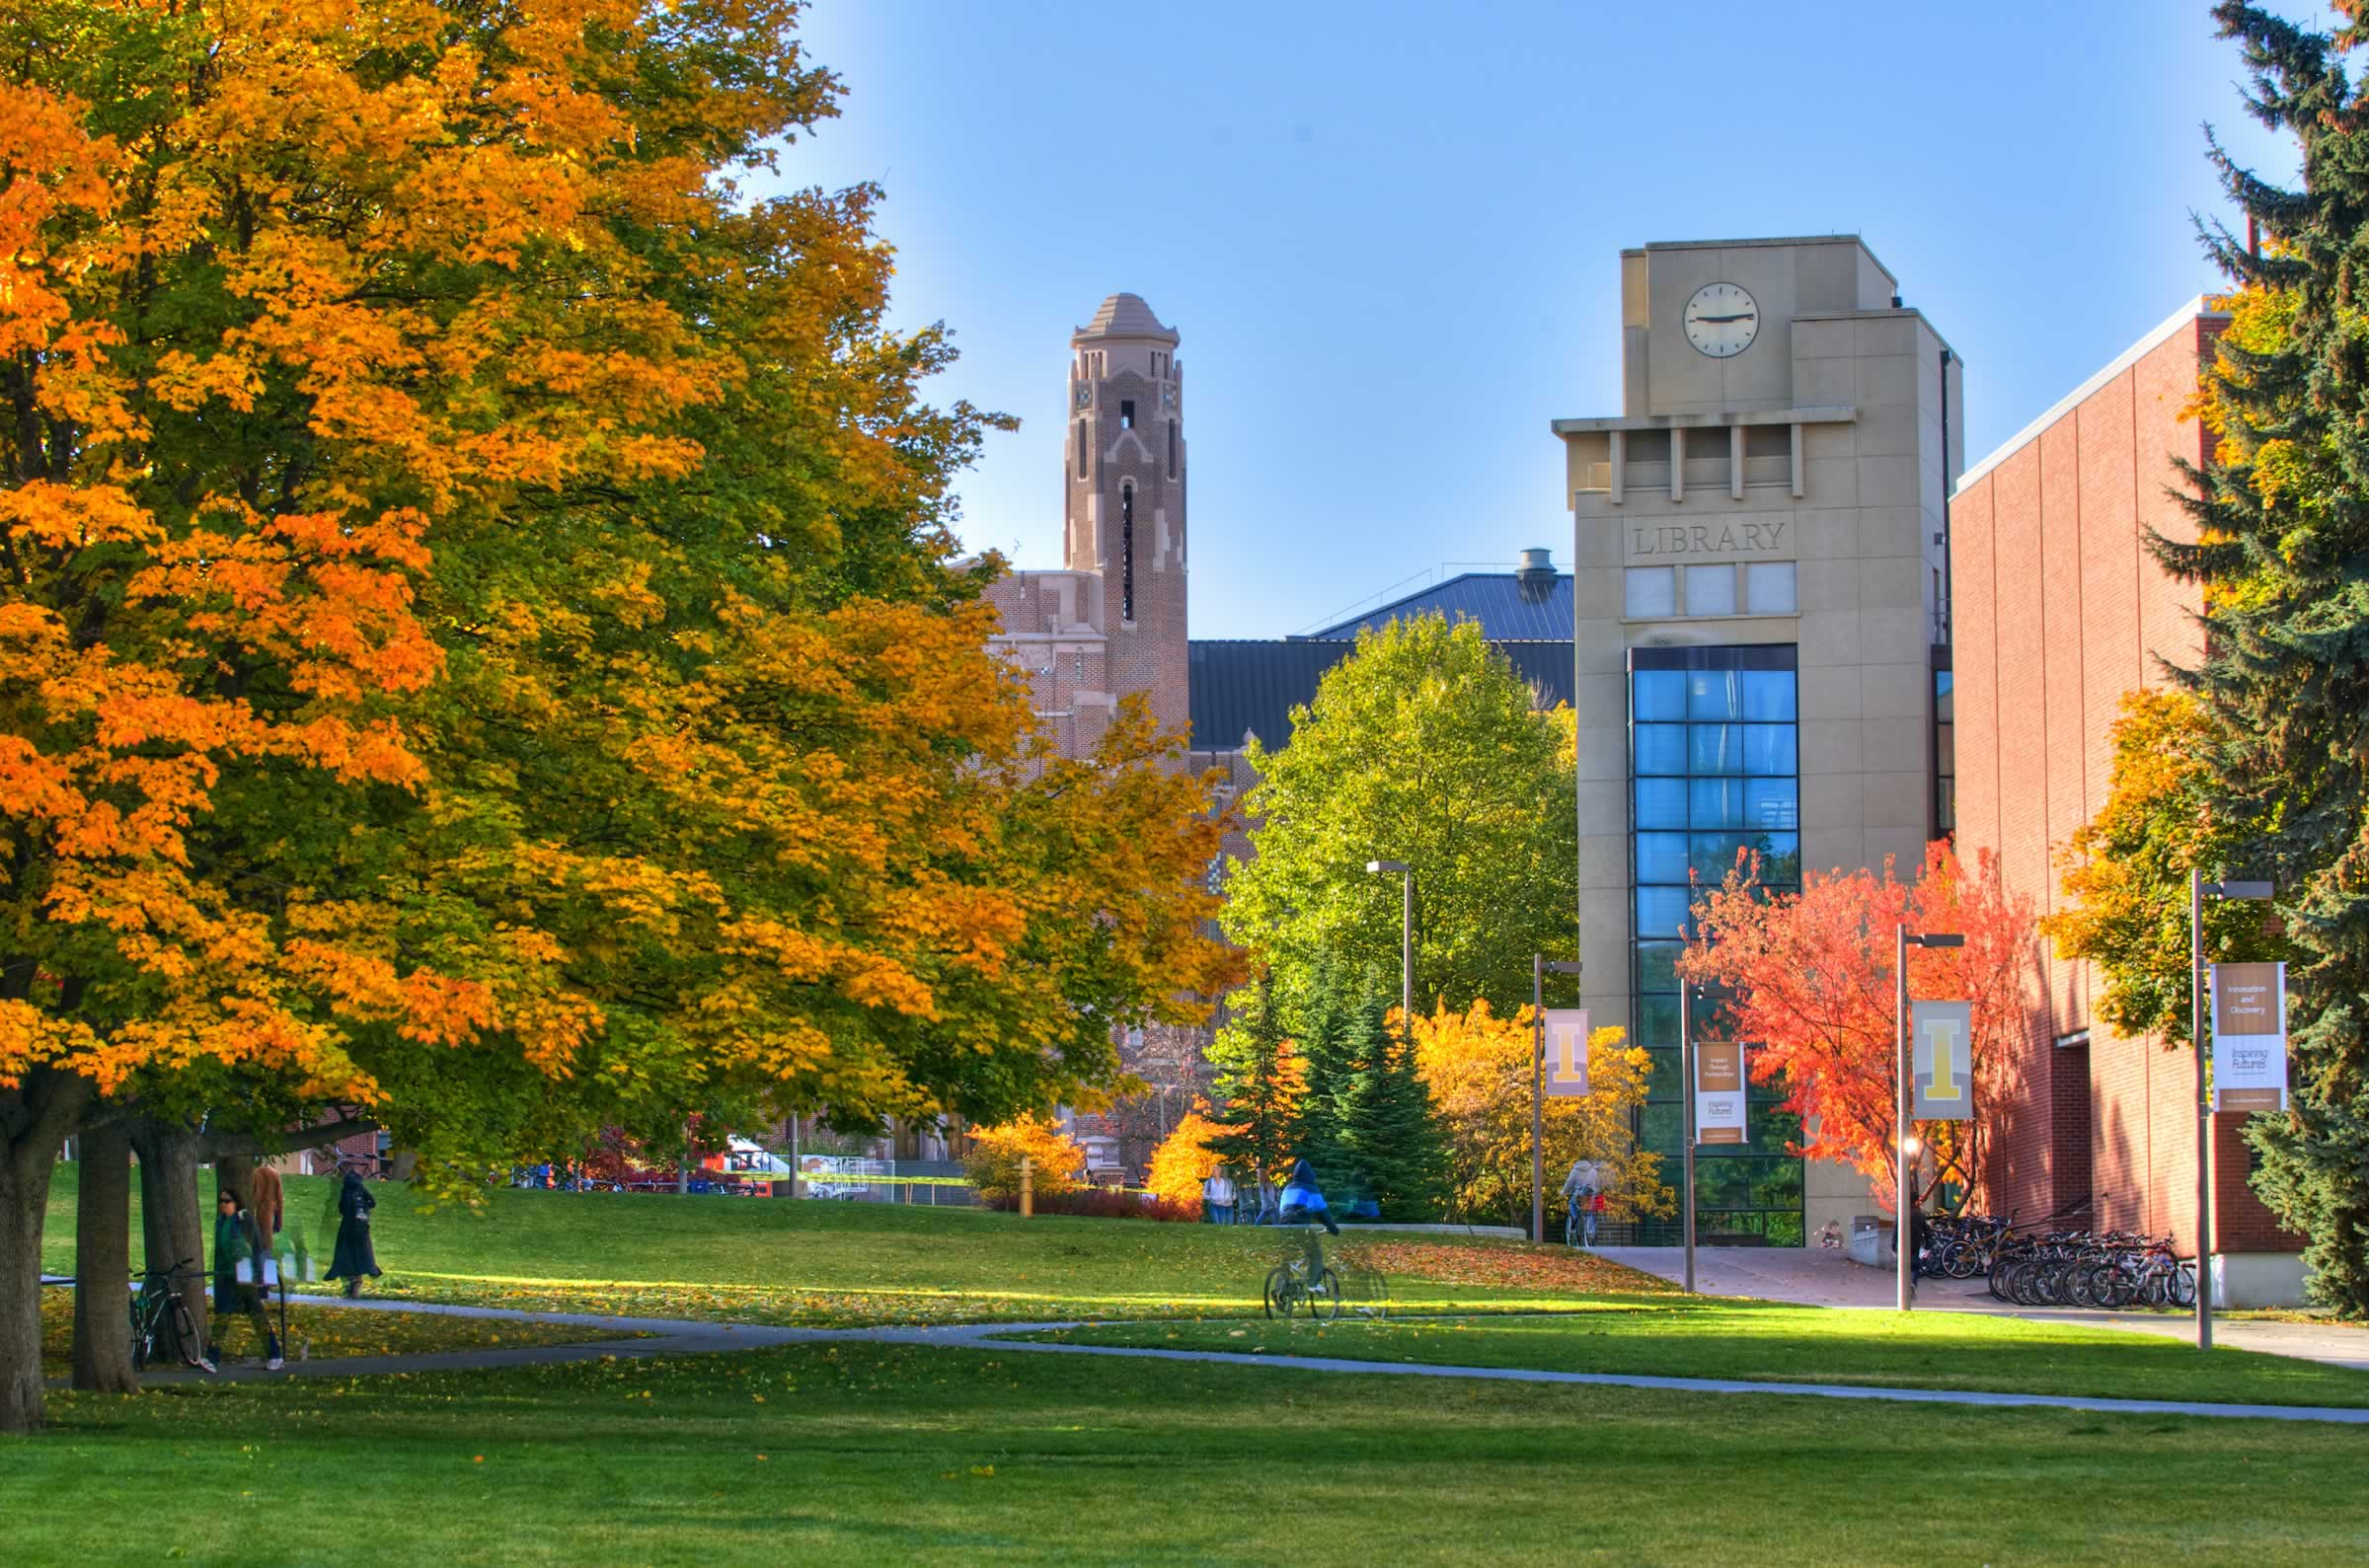 Photograph of the University of Idaho Library in Fall